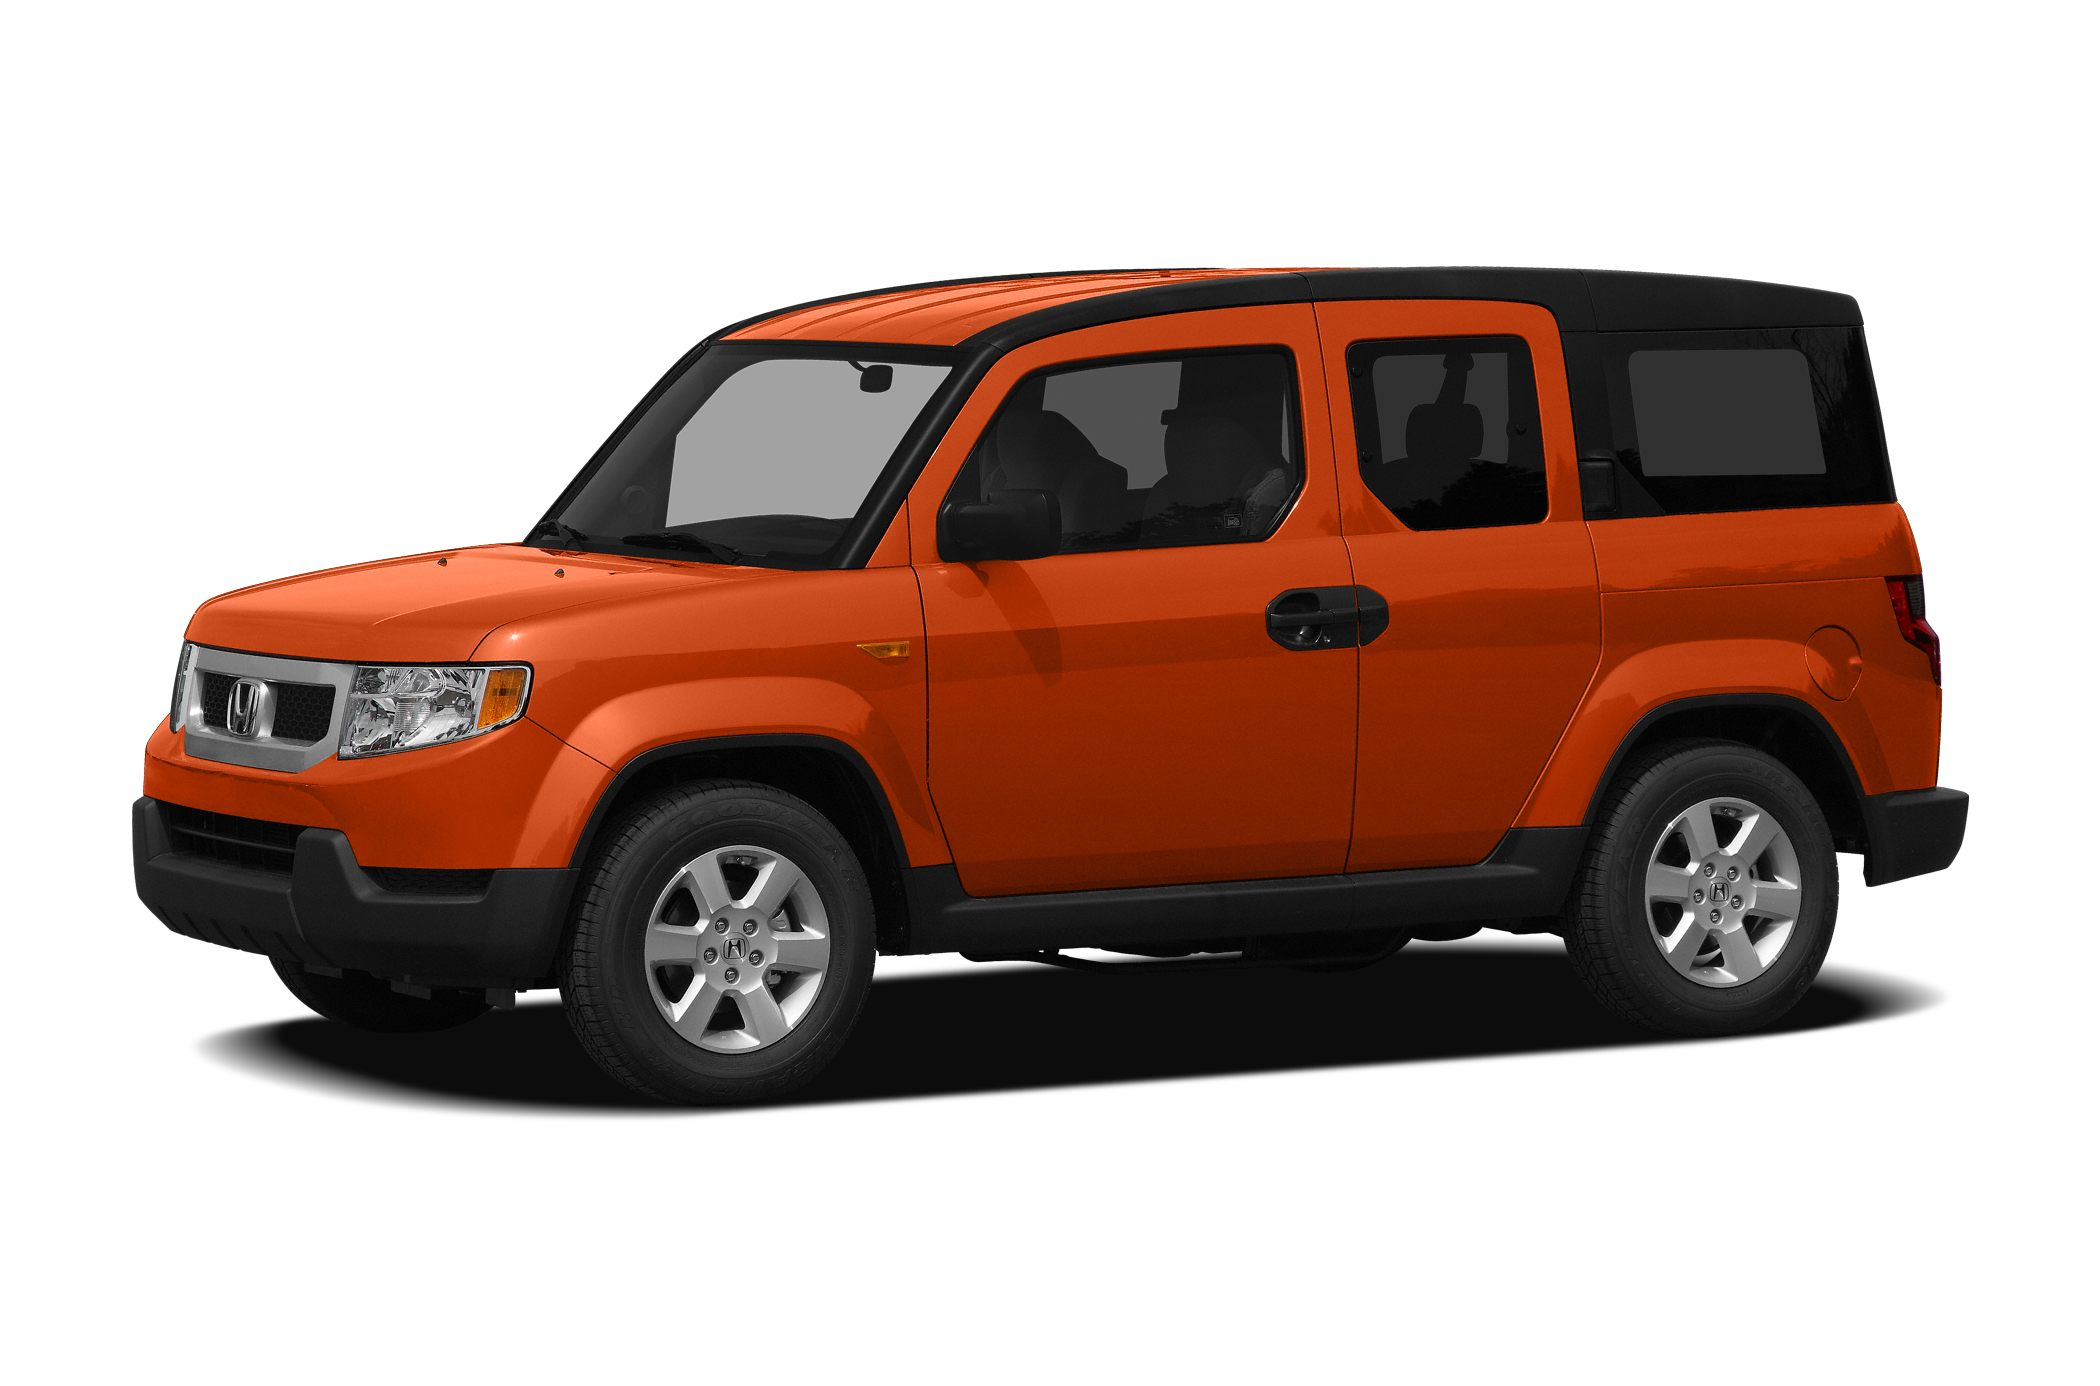 2010 Honda Element LX JUST ACQUIRED - PICS SOON no frills sell it as we got it special price